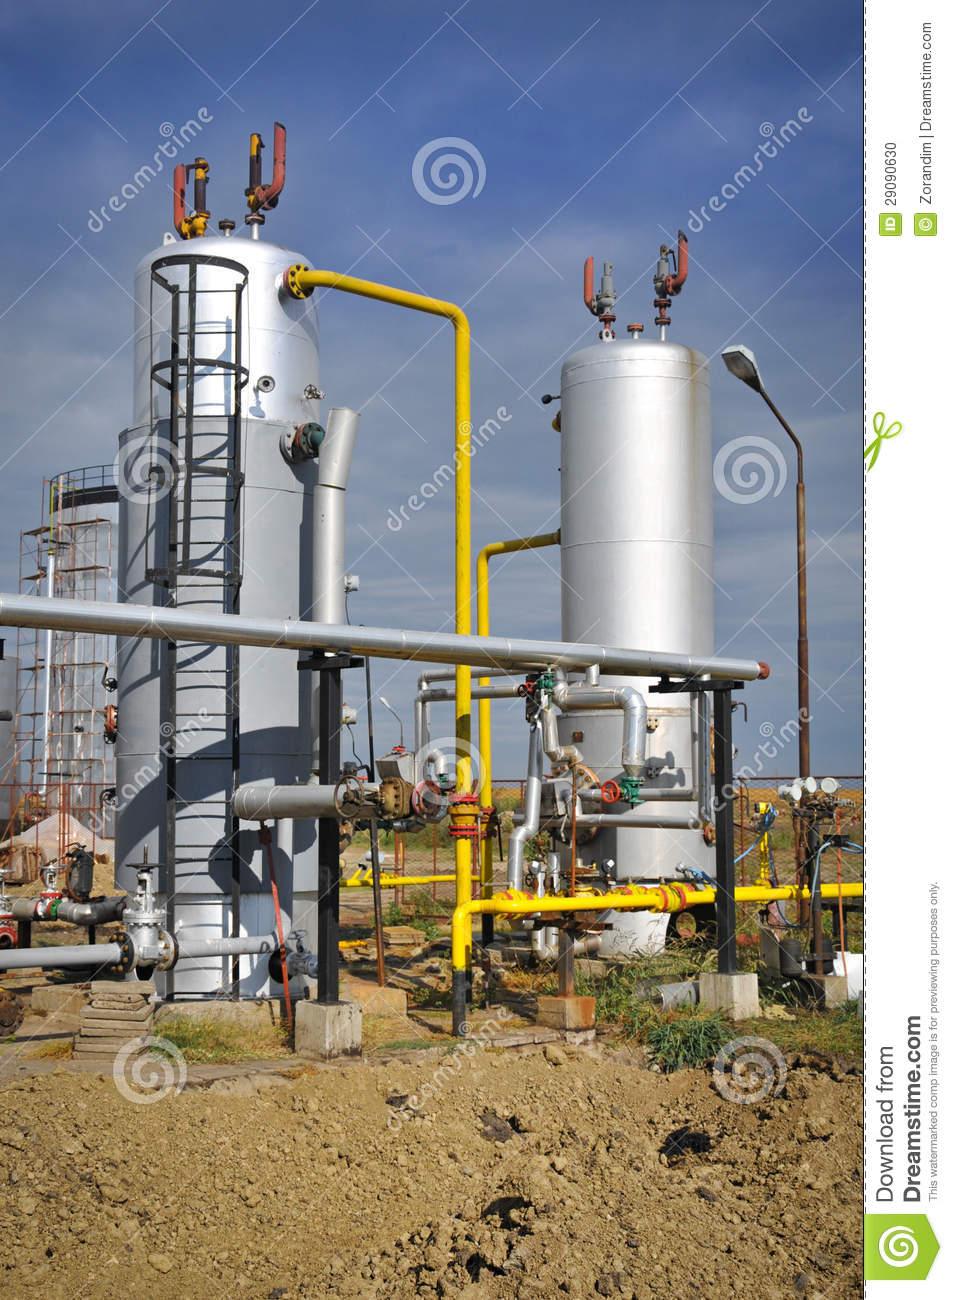 Oil And Gas Processing Plant Stock Photo - Image: 29090630